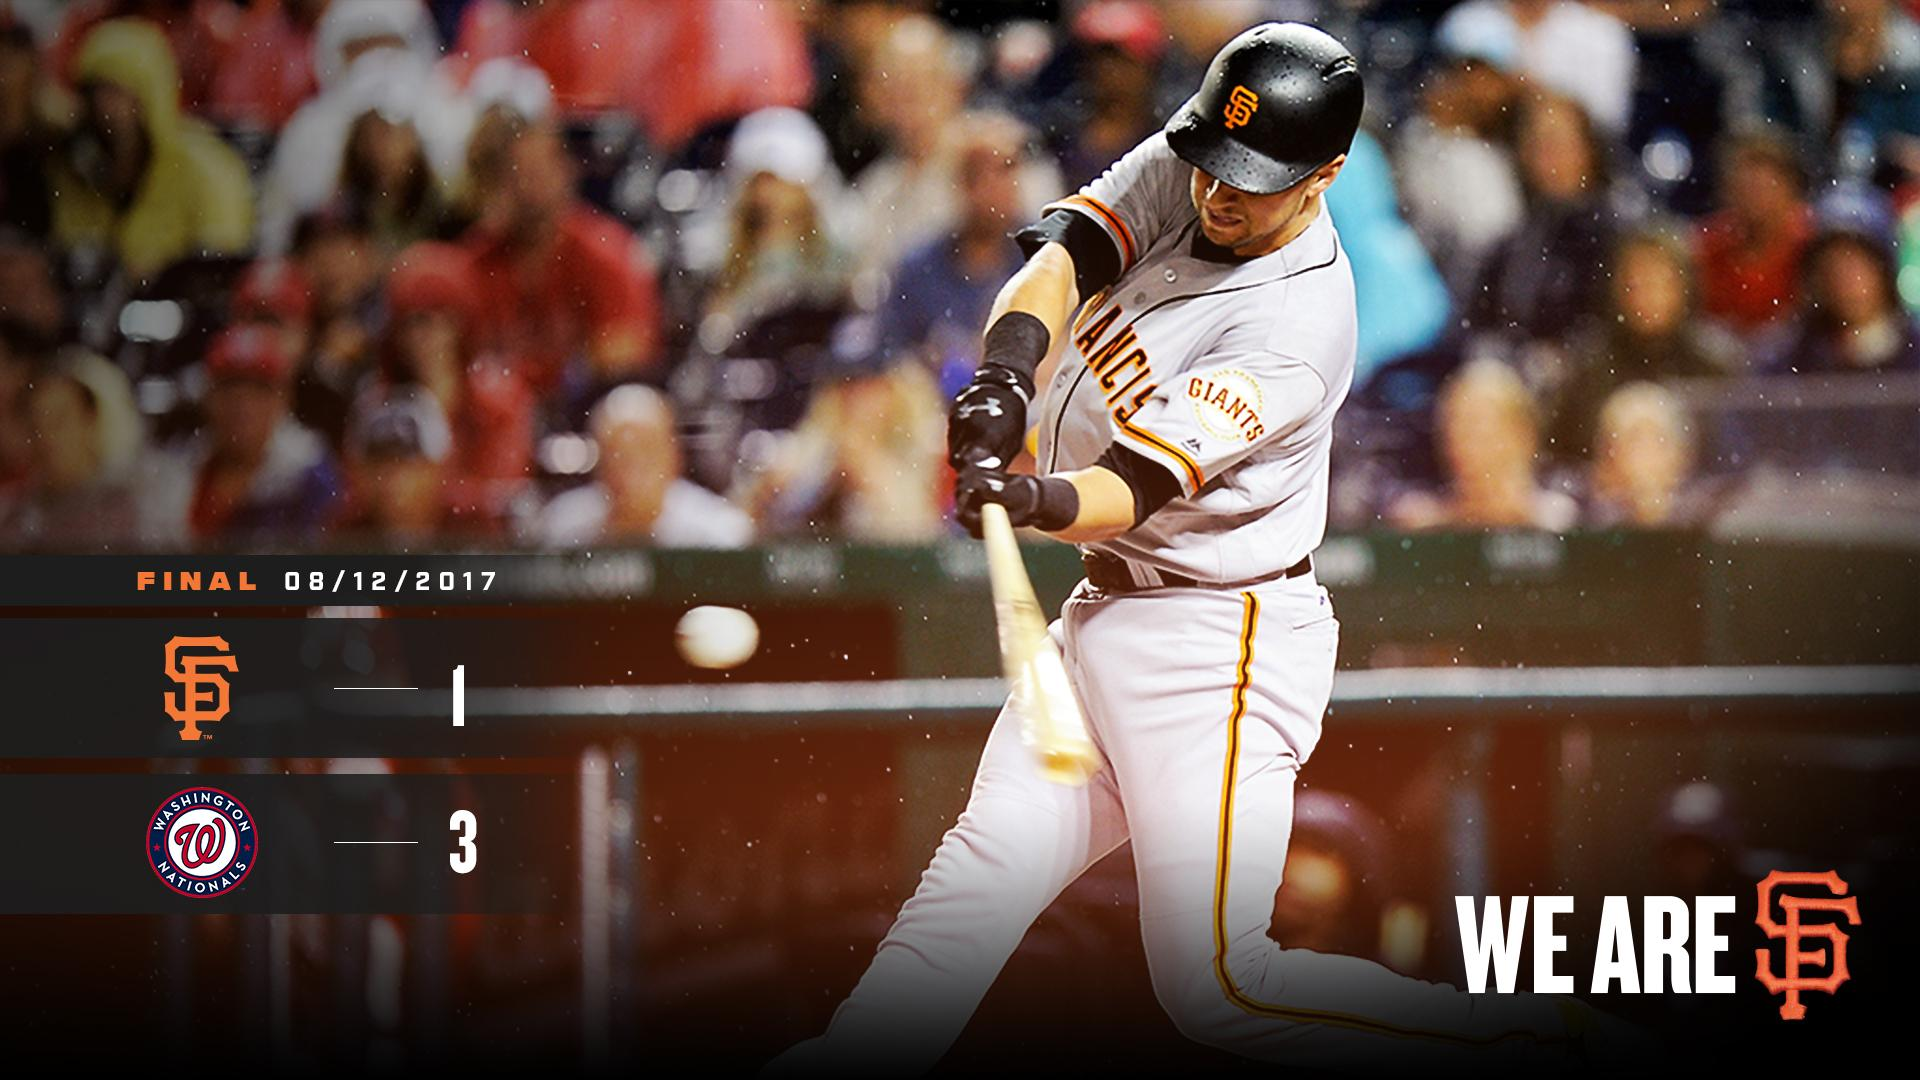 Panik hits 7th of the year